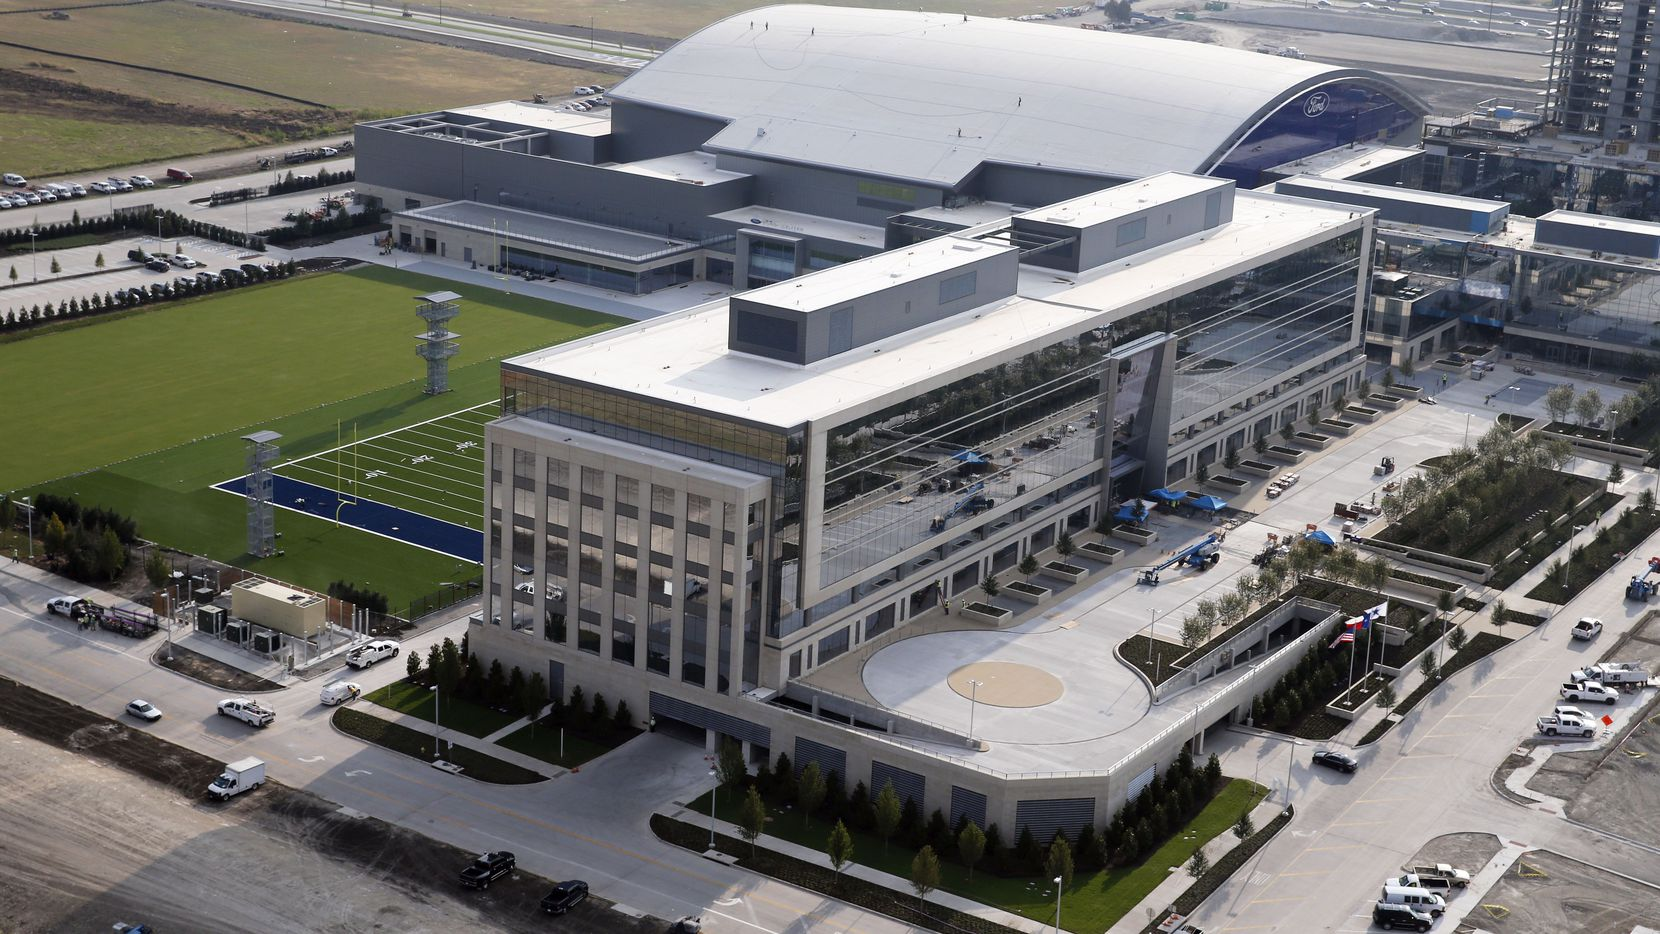 Dallas law firm McCathern PLLC has signed a 10-year lease in the Dallas Cowboys' headquarters office building on Warren Parkway west of the Dallas North Tollway.